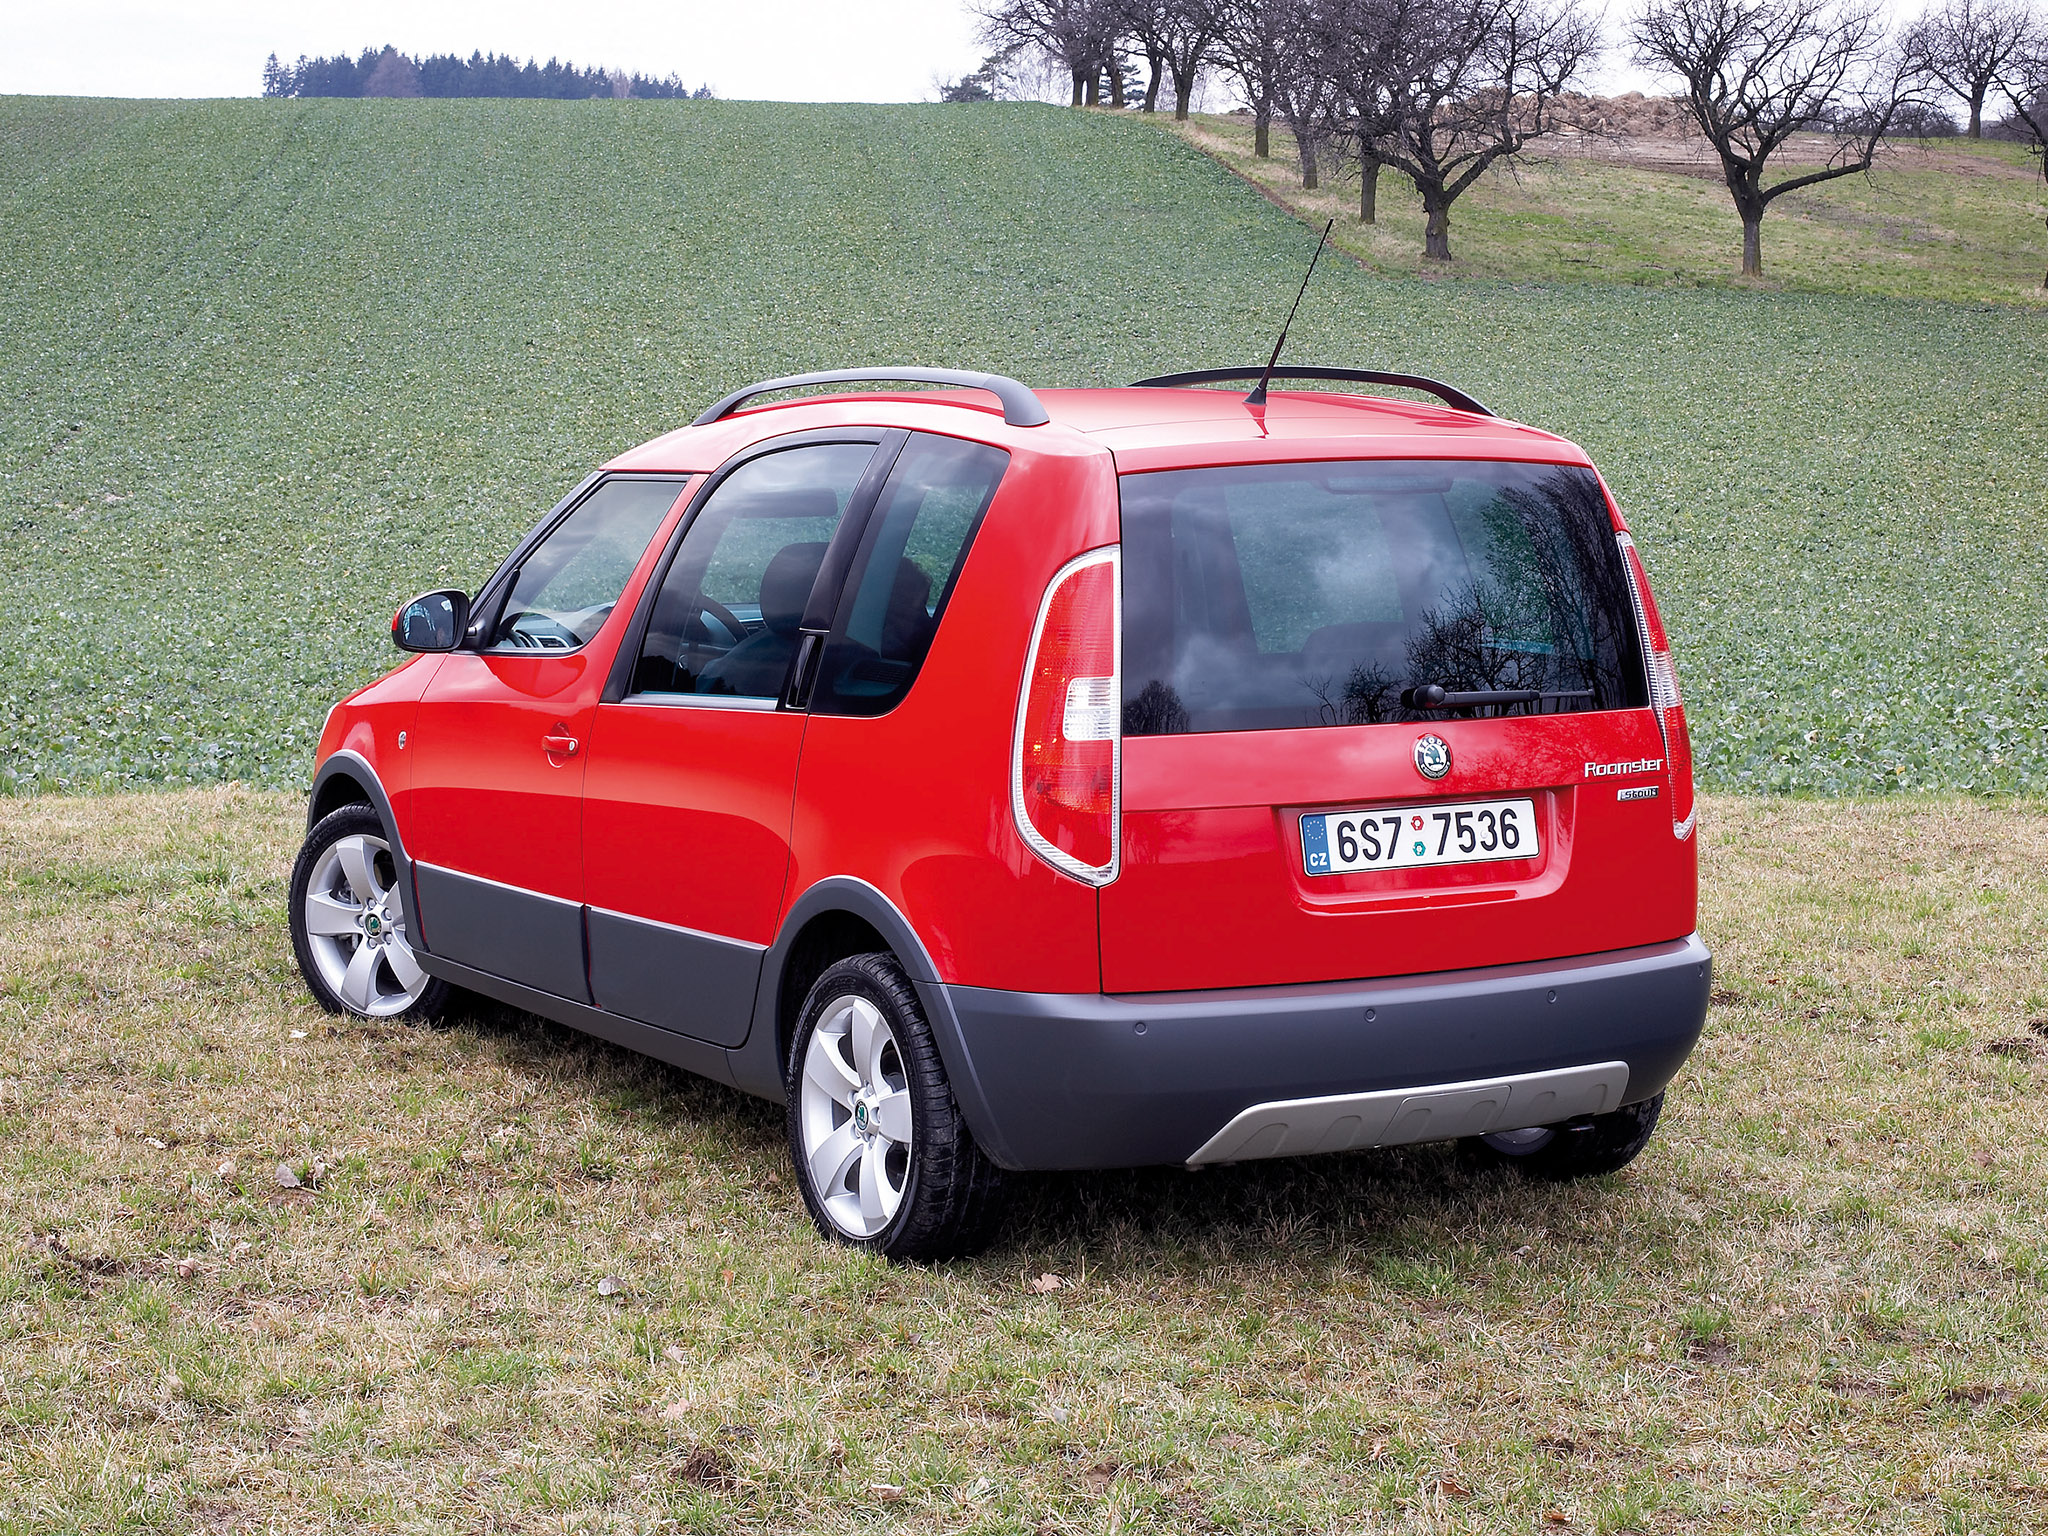 skoda roomster scout 2007 skoda roomster scout 2007 photo 02 car in pictures car photo gallery. Black Bedroom Furniture Sets. Home Design Ideas